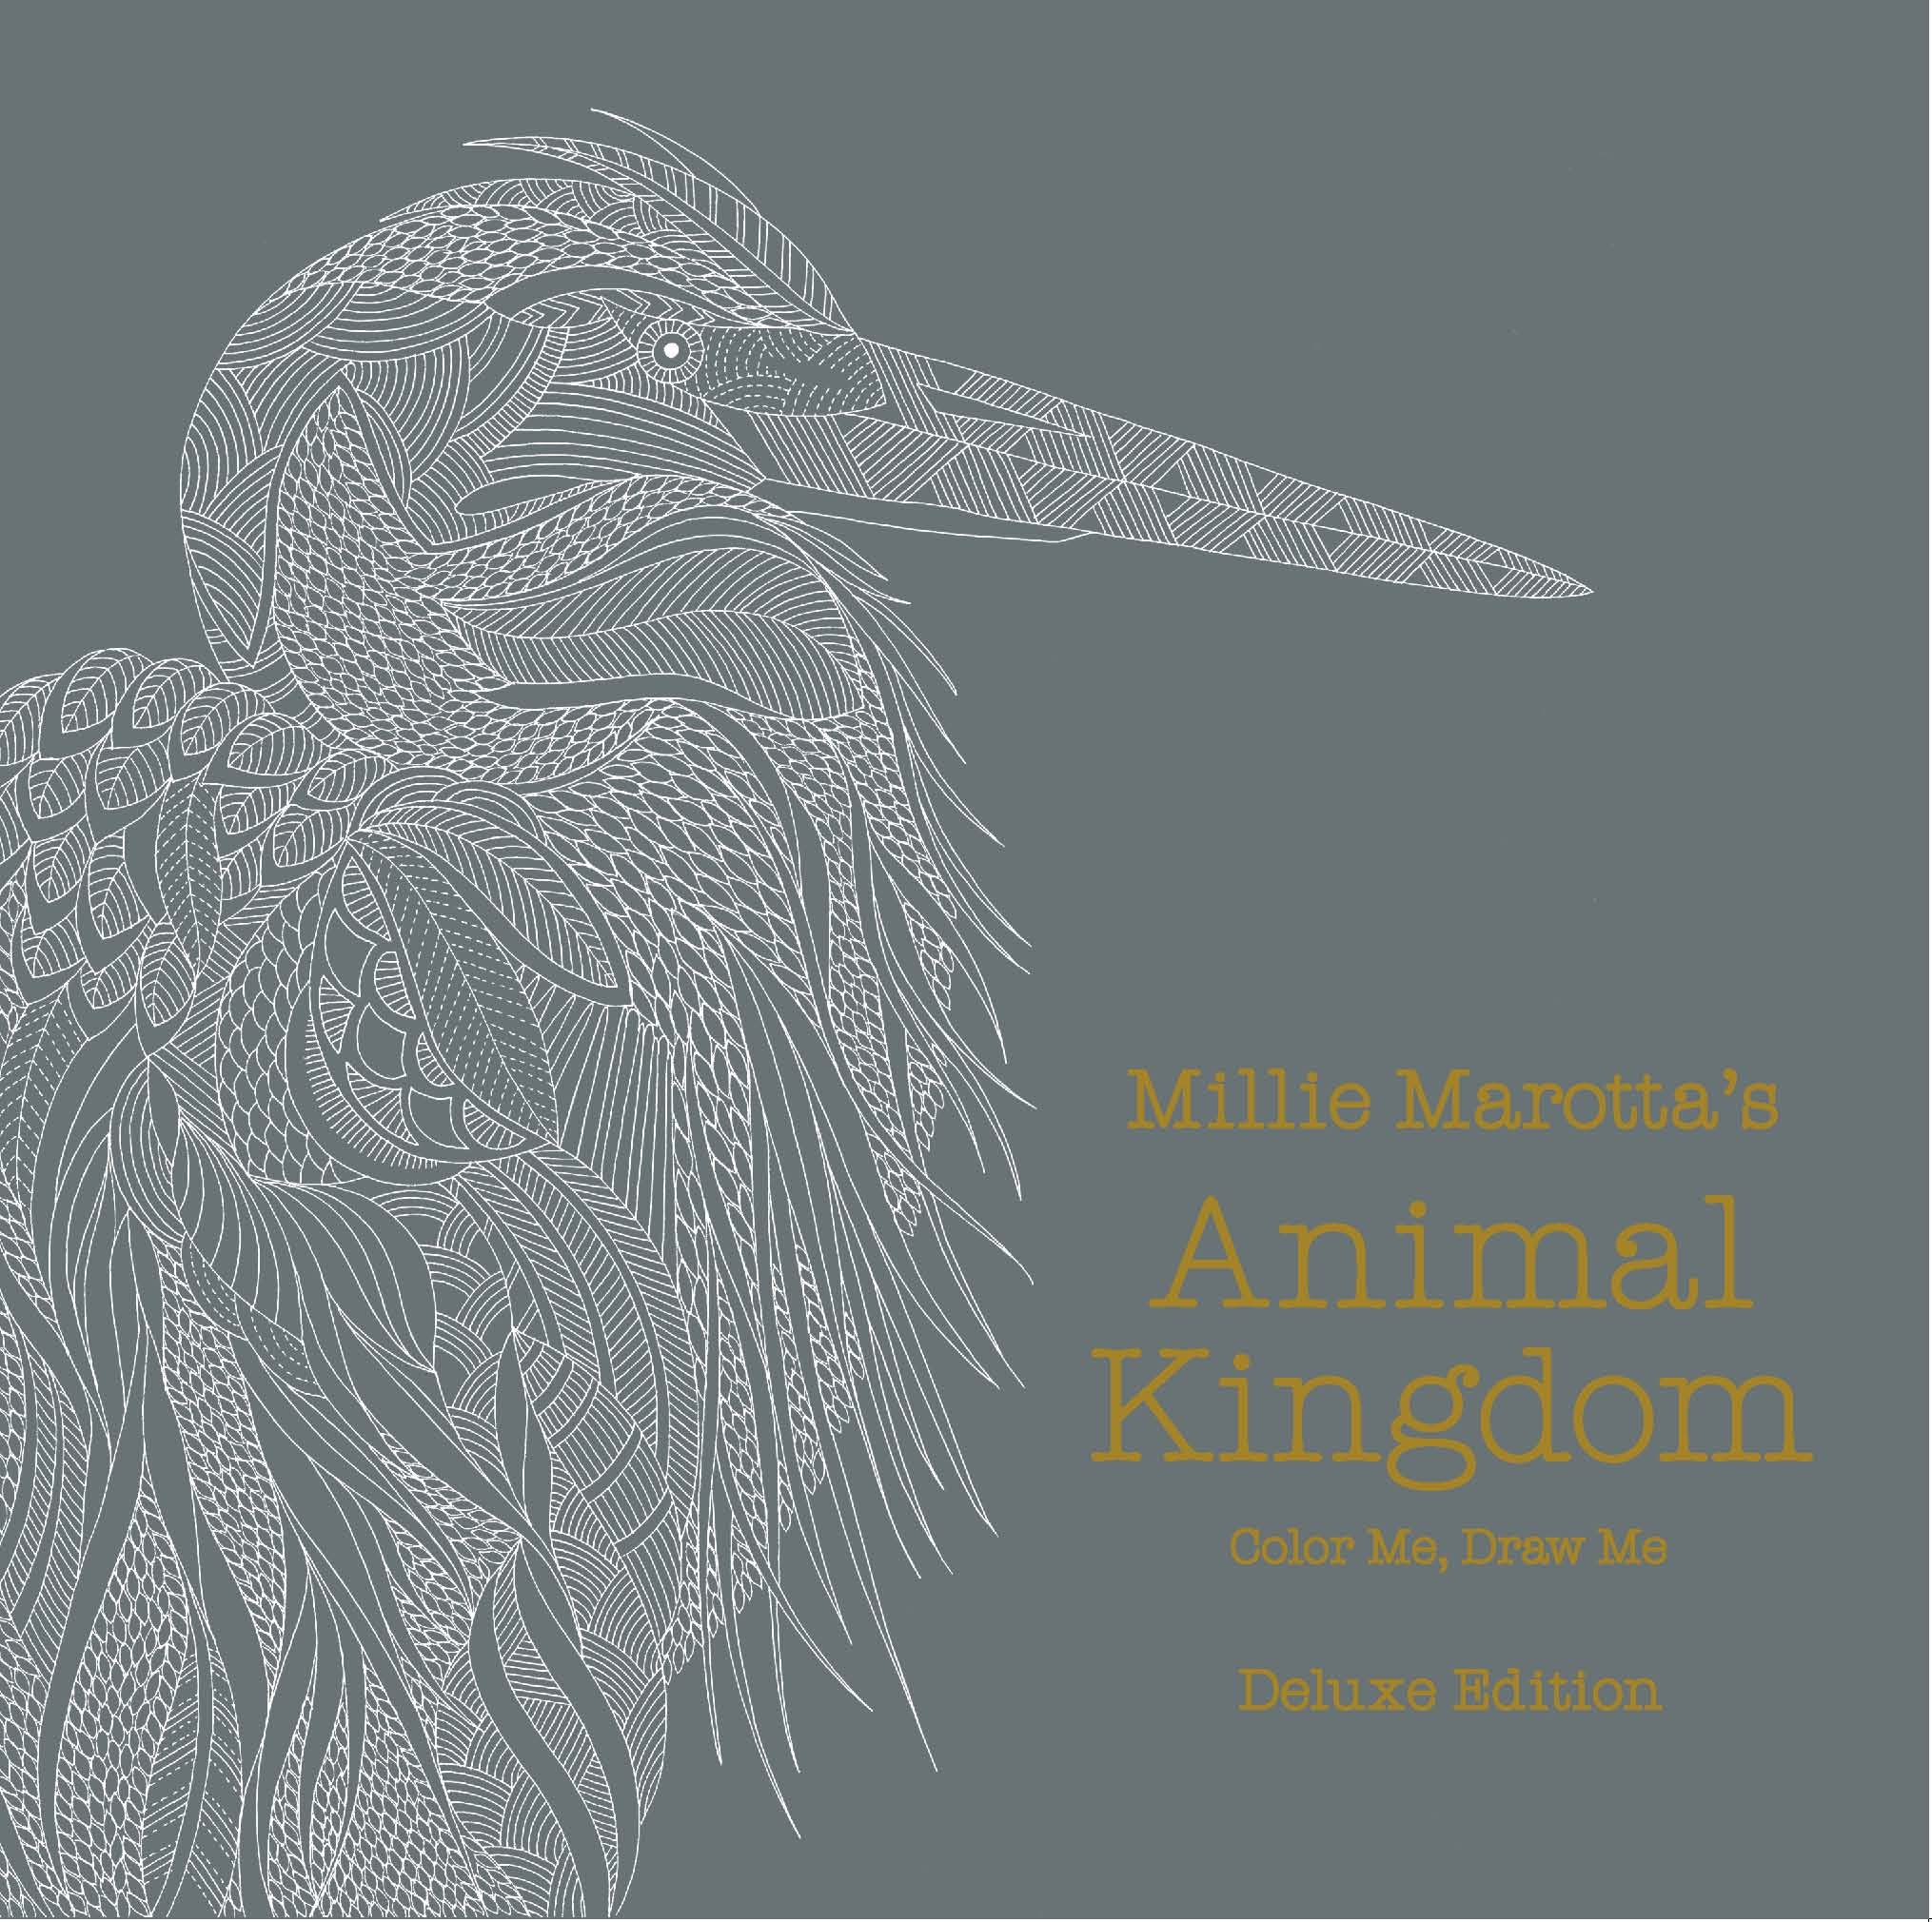 Millie Marottas Animal Kingdom Deluxe Edition Color Me Draw Marotta 9781454709527 Books